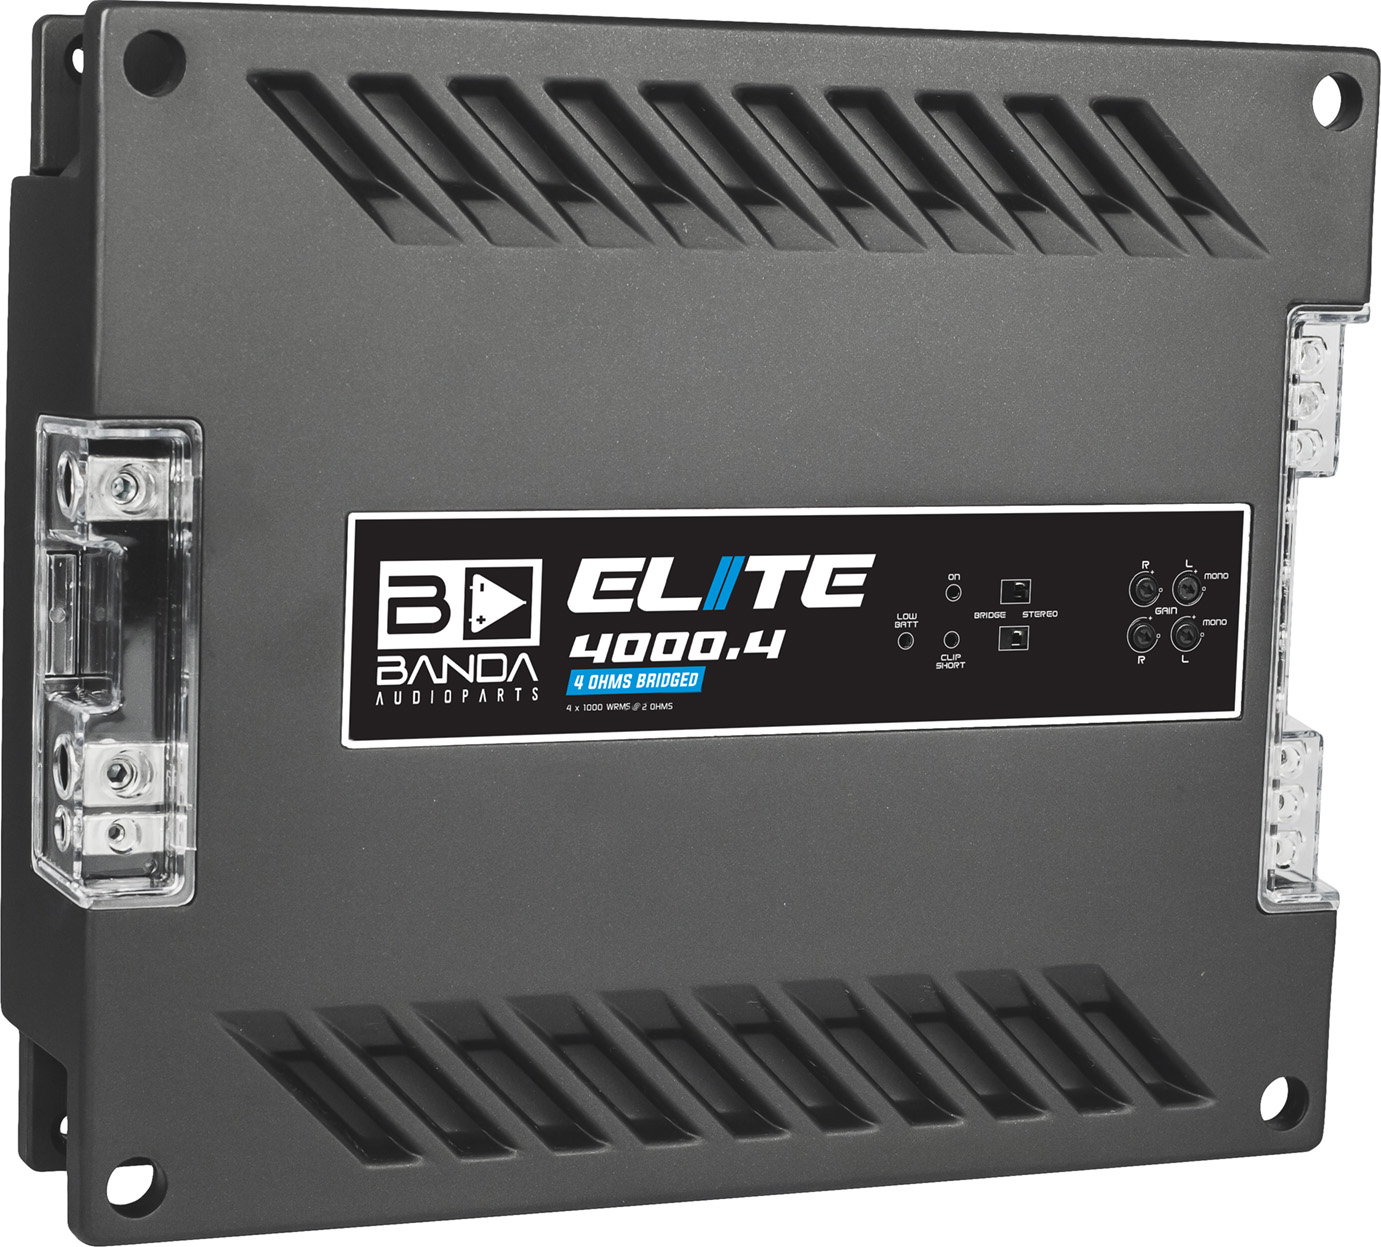 elite-4000.4-diagonal-19 ELITE